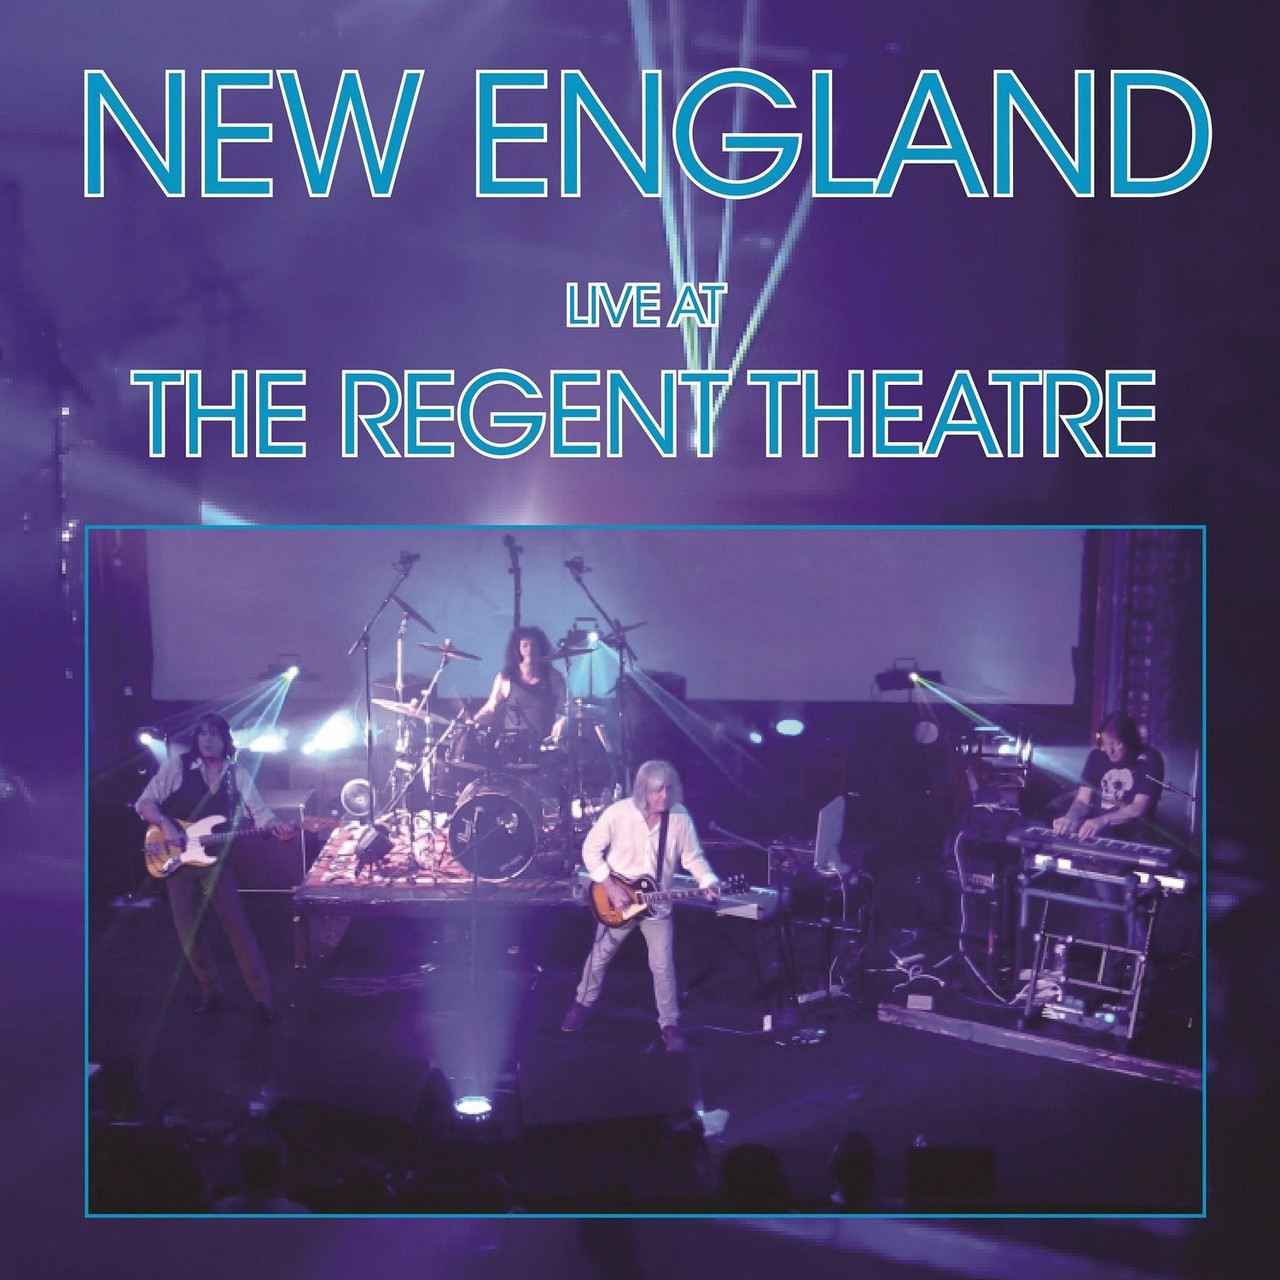 New England - Live At The Regents Theatre